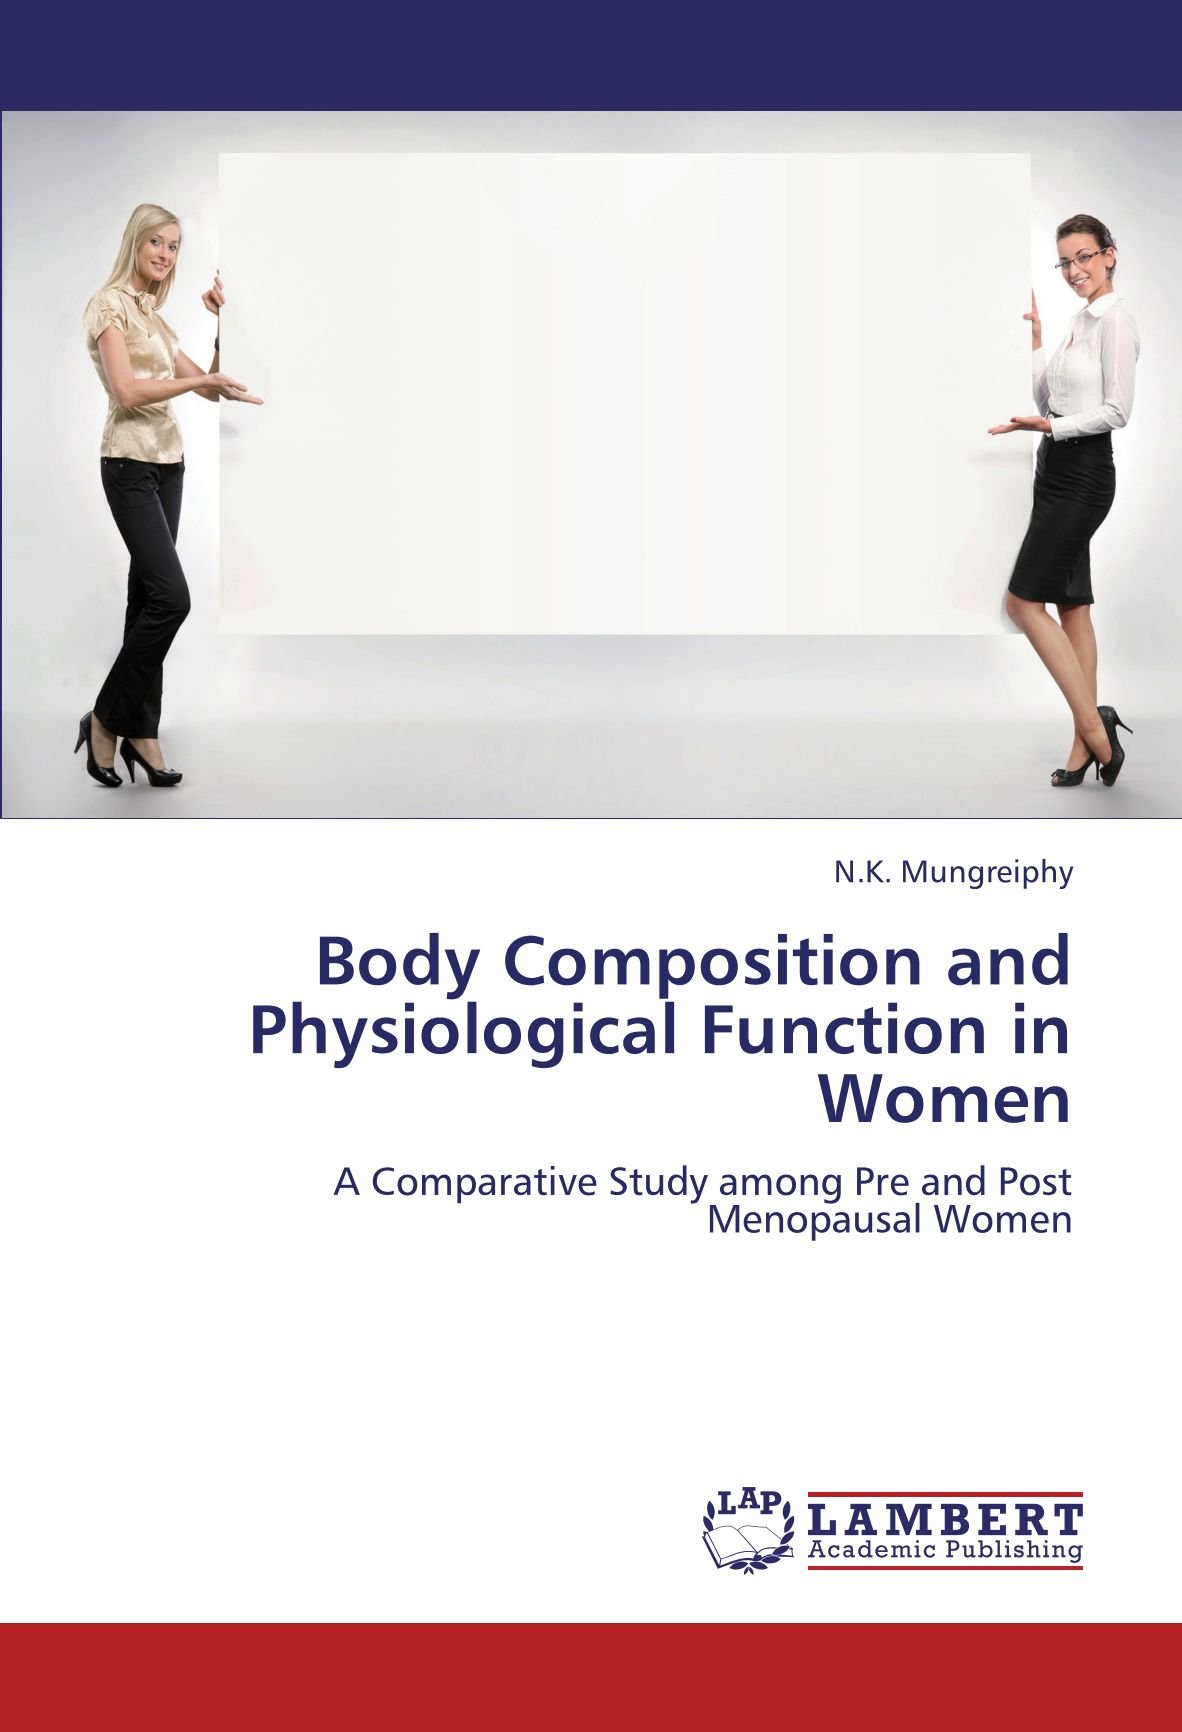 Download Body Composition and Physiological Function in Women: A Comparative Study among Pre and Post Menopausal Women pdf